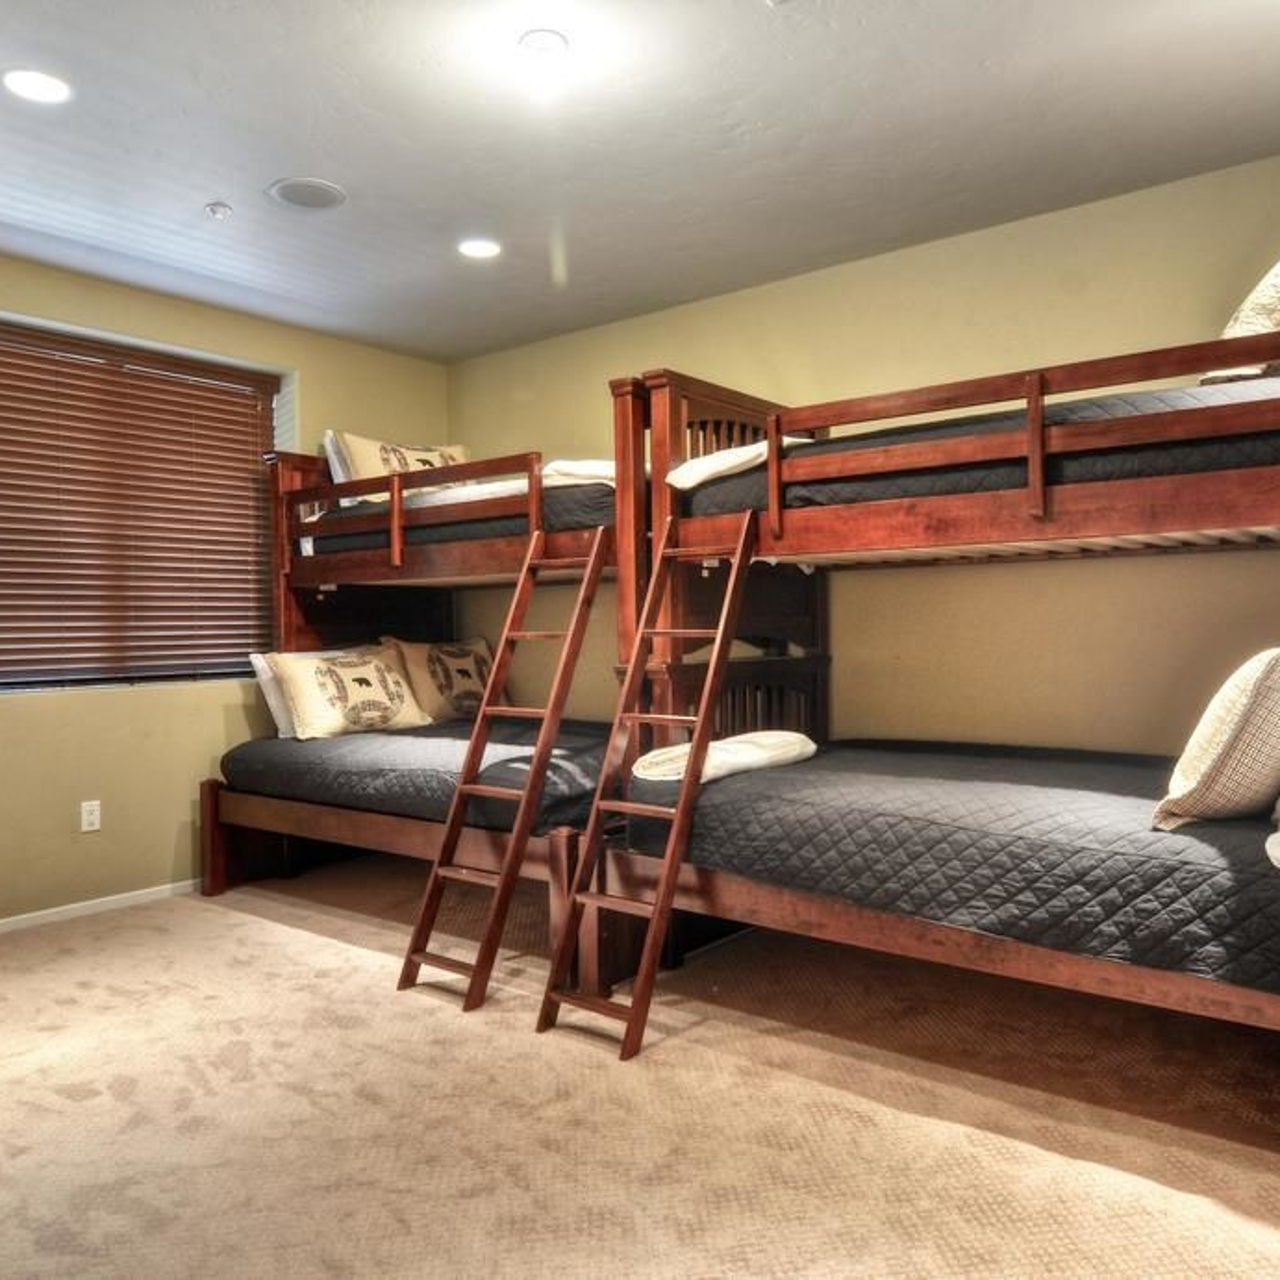 Picture of: Hotel No 20 Mountain Masterpiece 3 Hrs Star Hotel In Big Bear Lake California